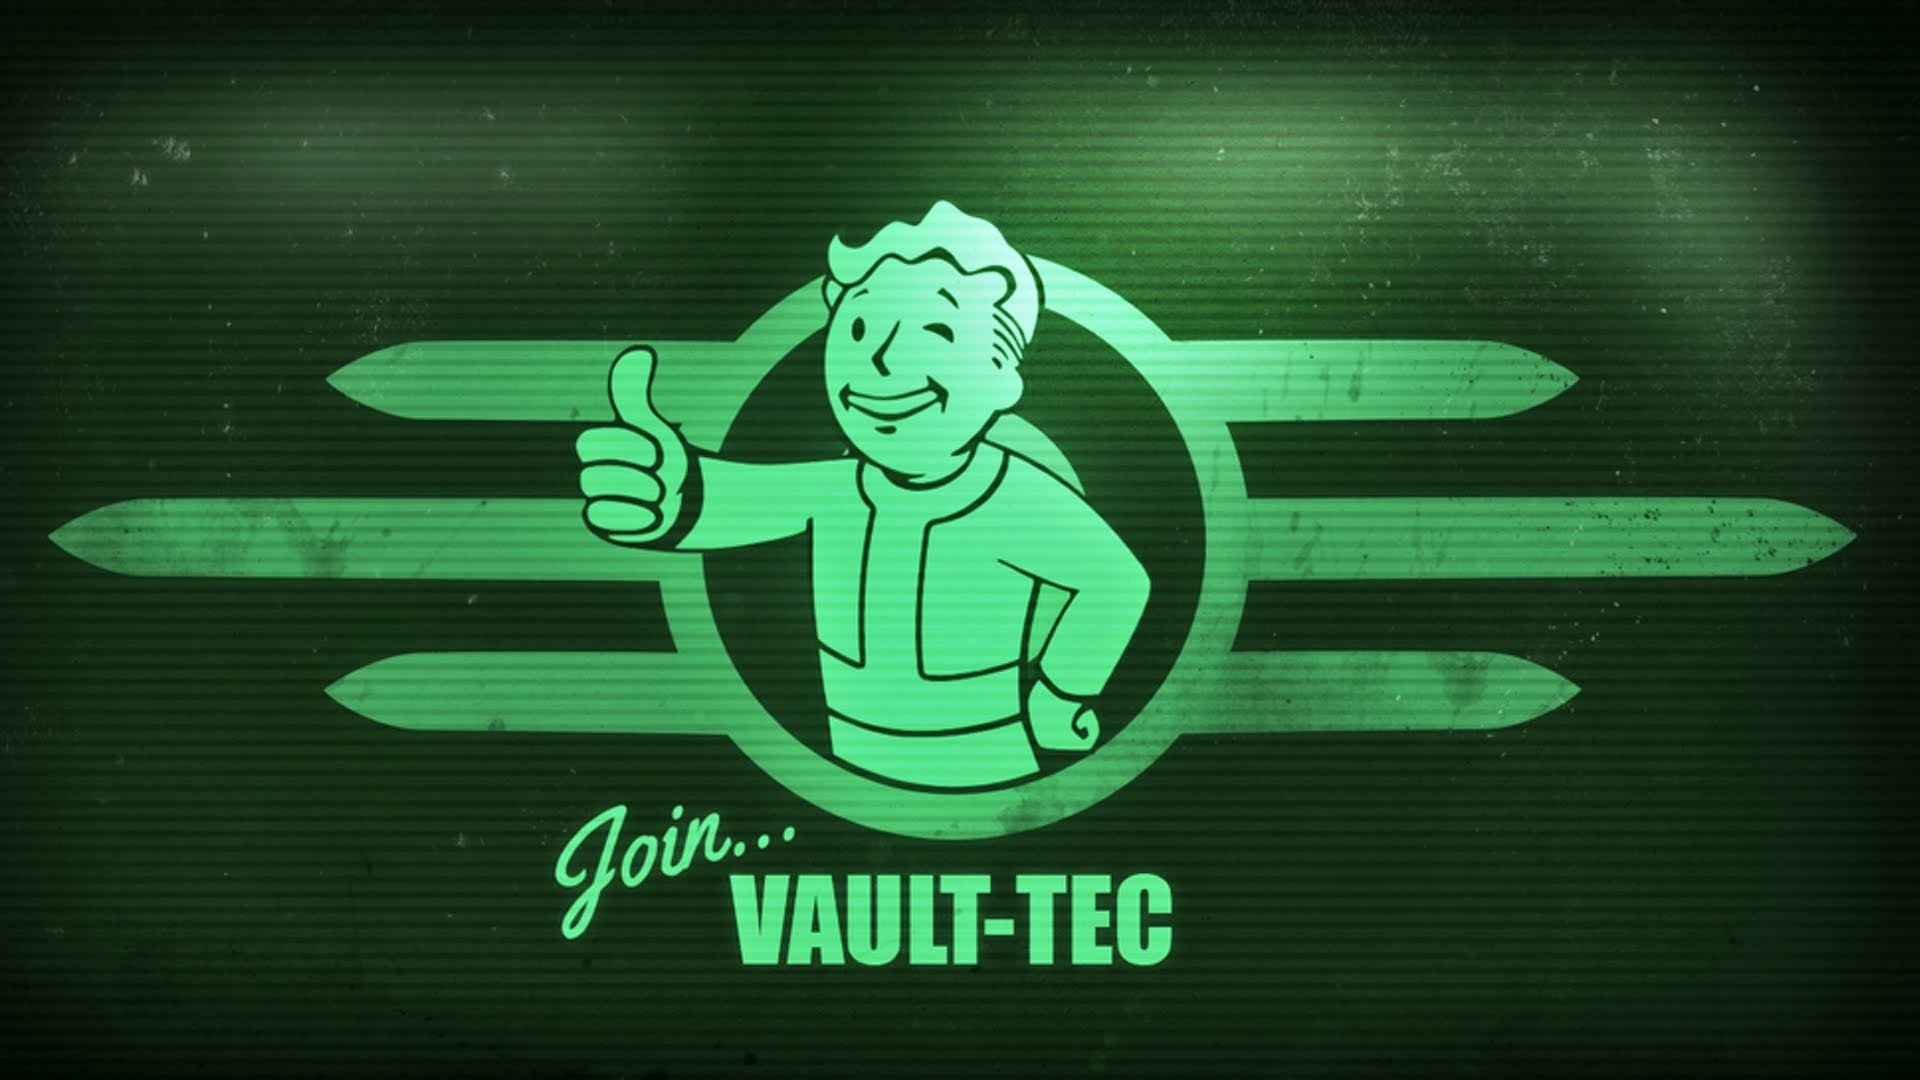 1536x2048 iphone 7 wallpapersfalaut 4 vr wallpaper fallout 4 vr 4k e3 2017 iphone 7 wallpapers very suitable as a wallpaper for tablet or smartphone(iphone ...